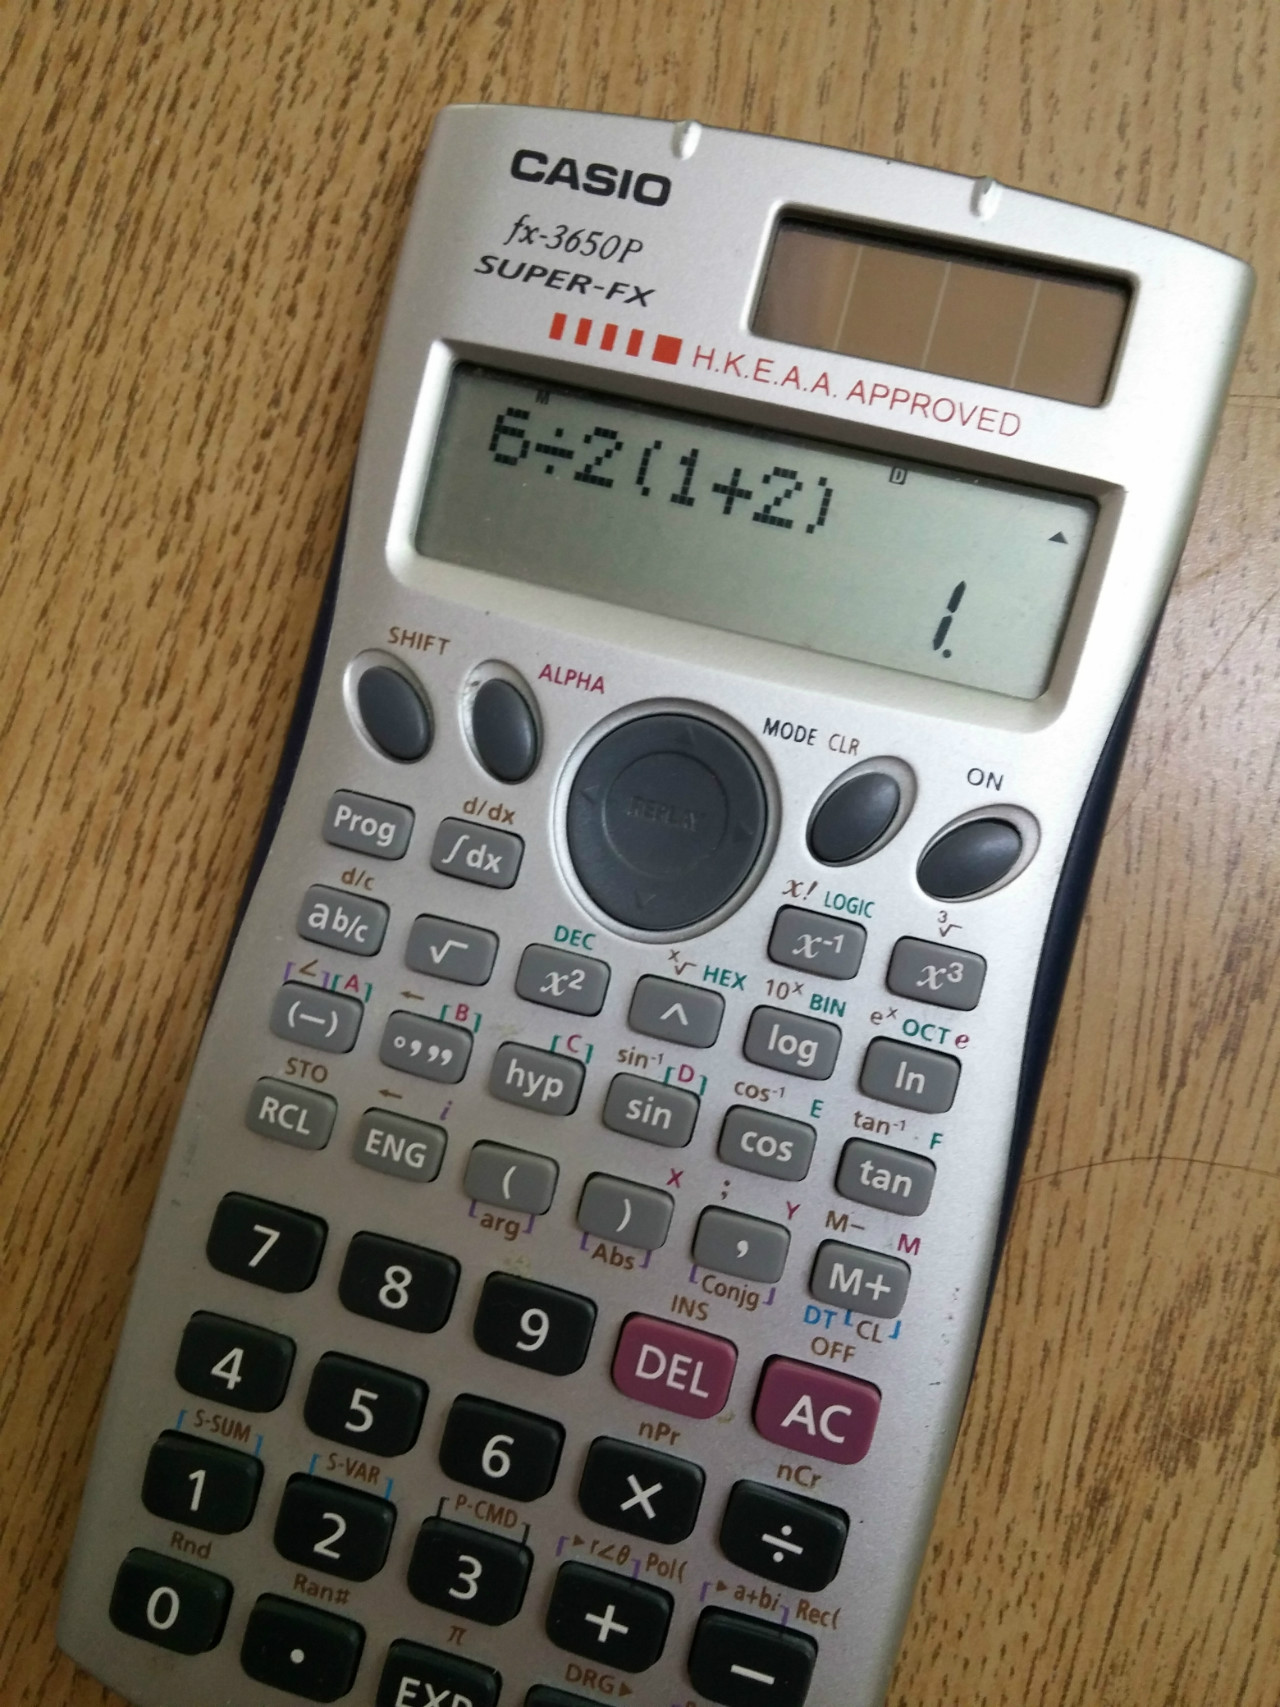 My Casio calculator thinks that is 1.